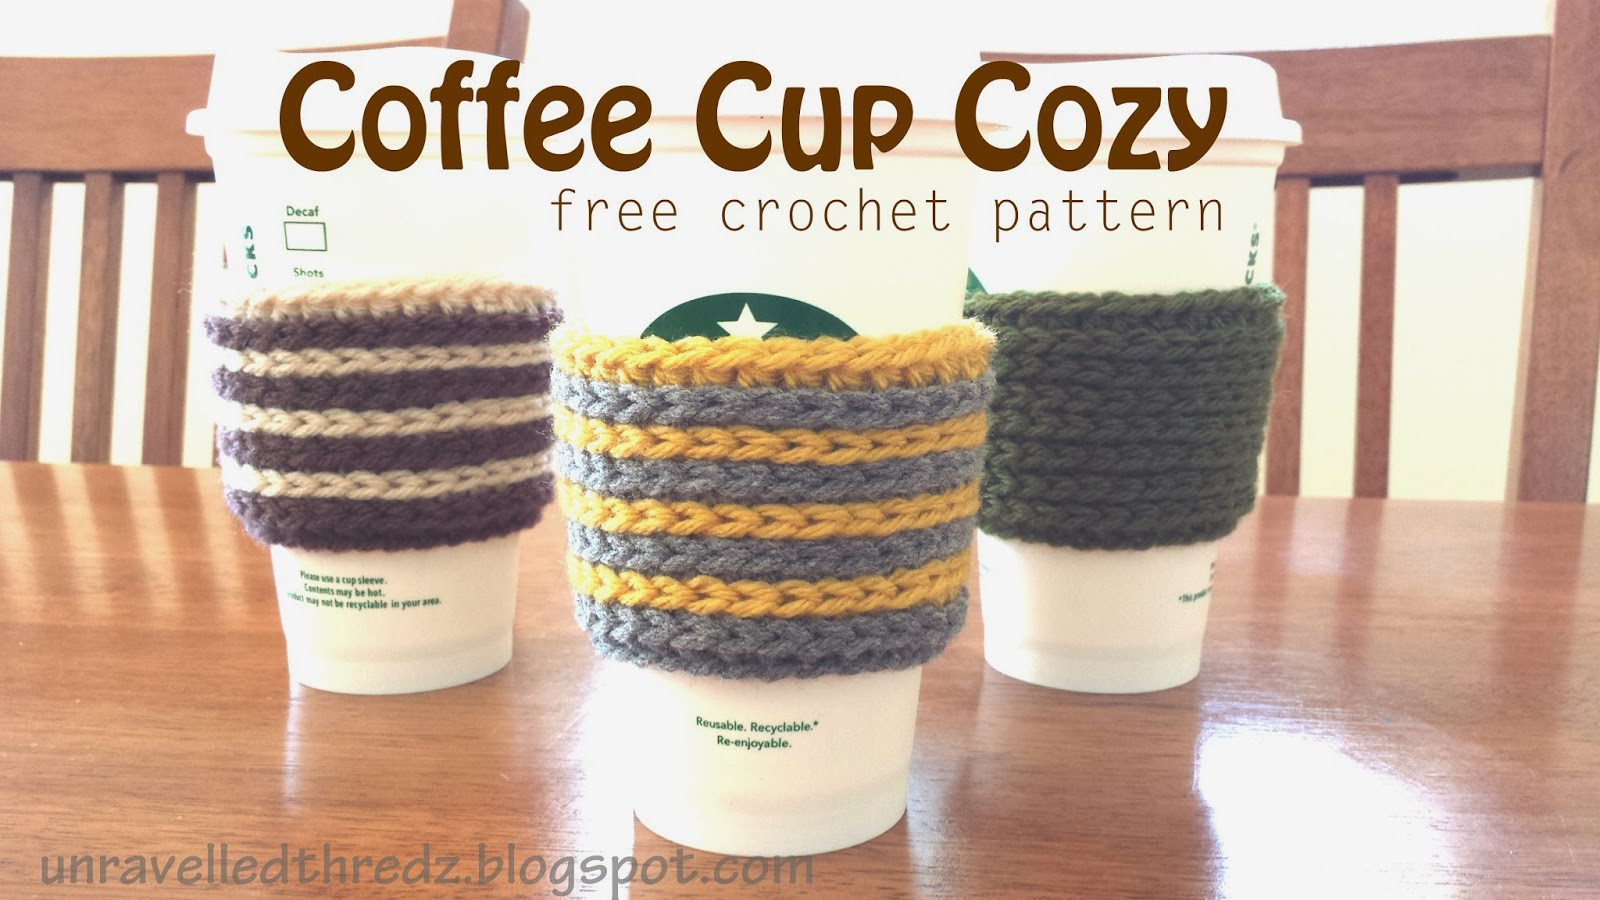 Crochet Coffee Cup Cozy Inspirational Crochet Class Beginning Crochet Sparkleez Crystles Of Crochet Coffee Cup Cozy Inspirational Crochet Coffee Cup Cozy Pattern Pdf Download Coffee Cup Cozy